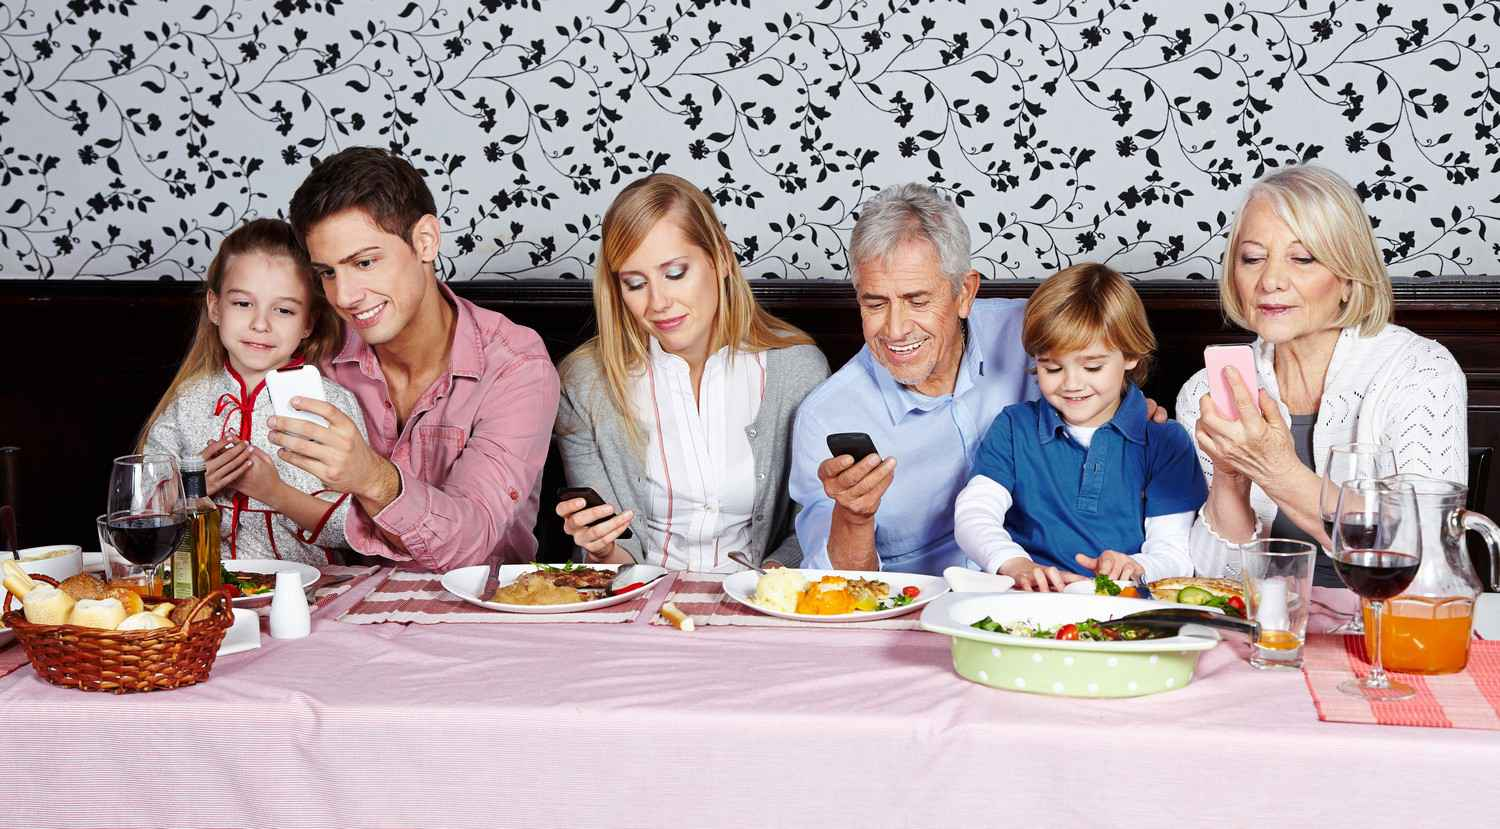 A Family Eating Lunch With Everyone Talking Privately On Their Phones